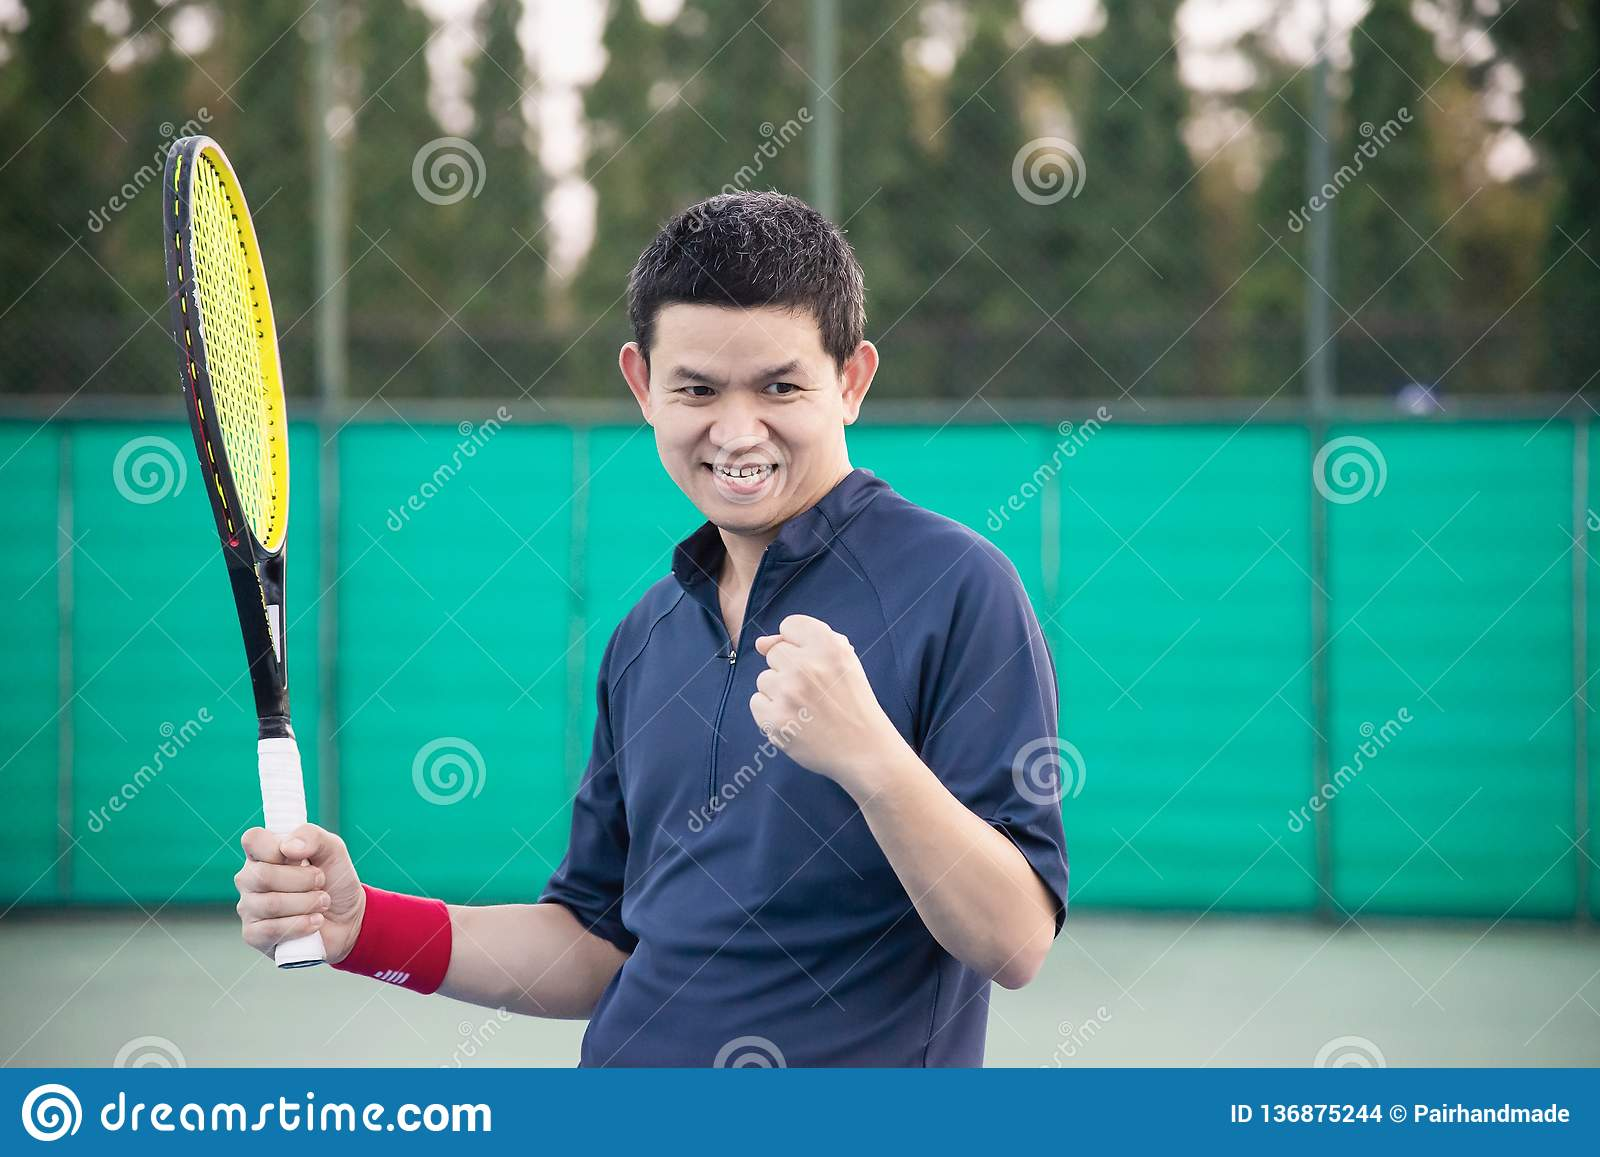 Tennis player expresses his victory in the game